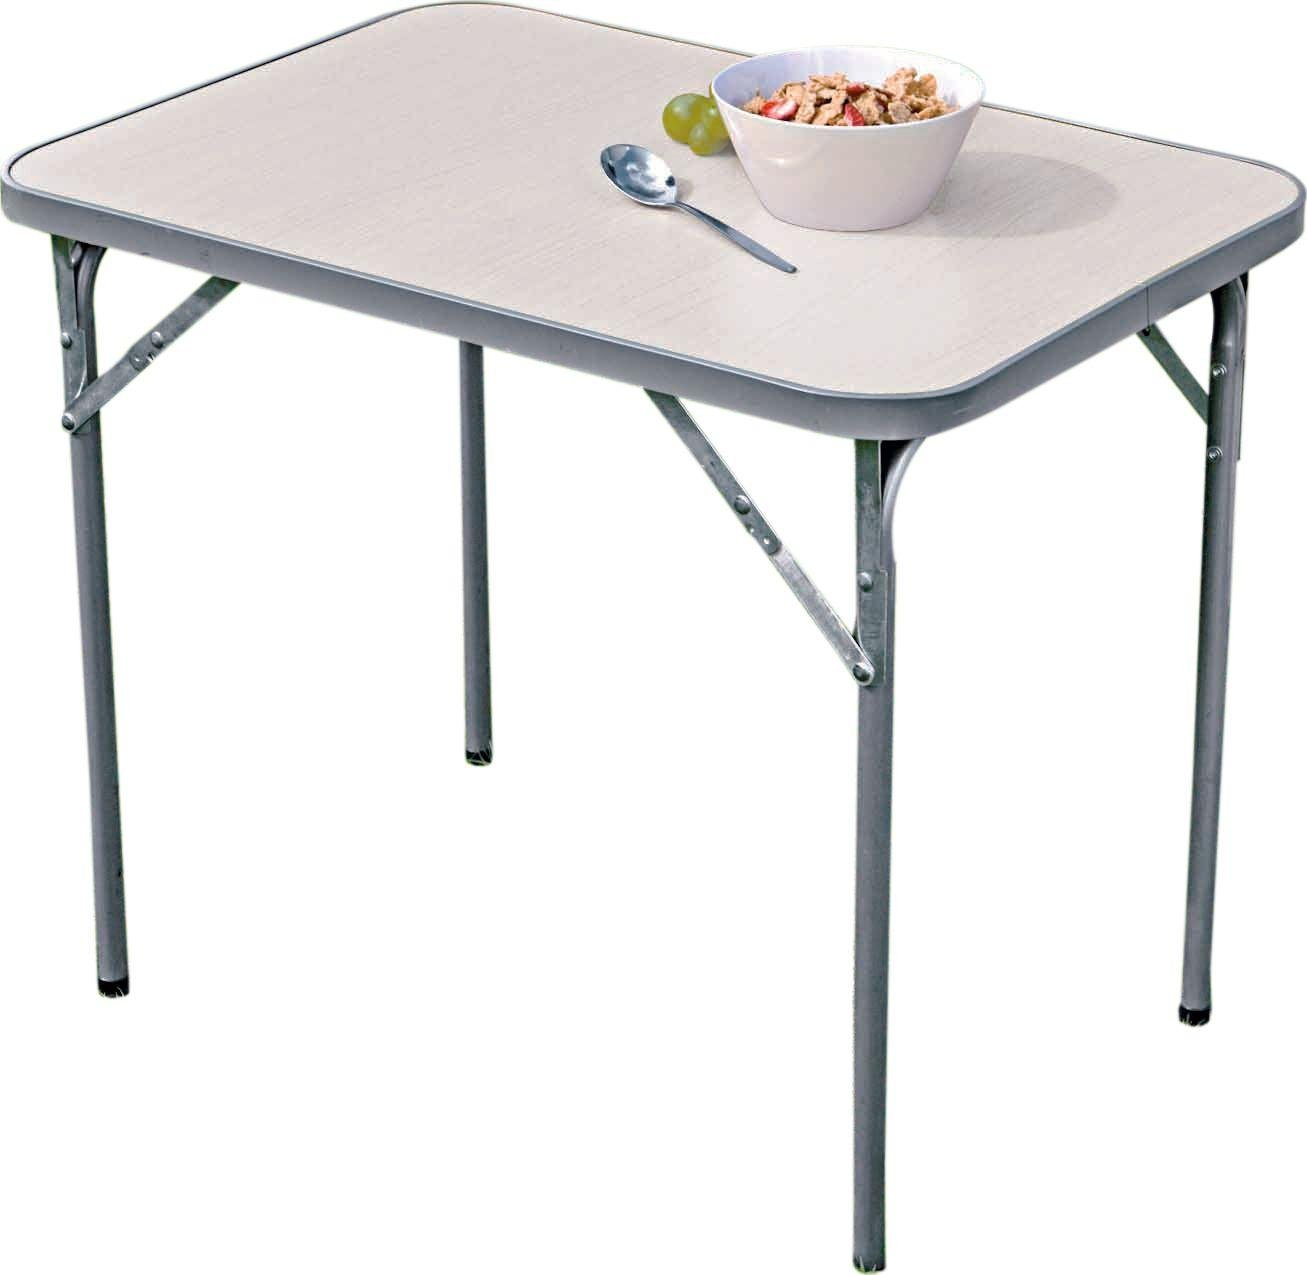 folding camping table review. Black Bedroom Furniture Sets. Home Design Ideas